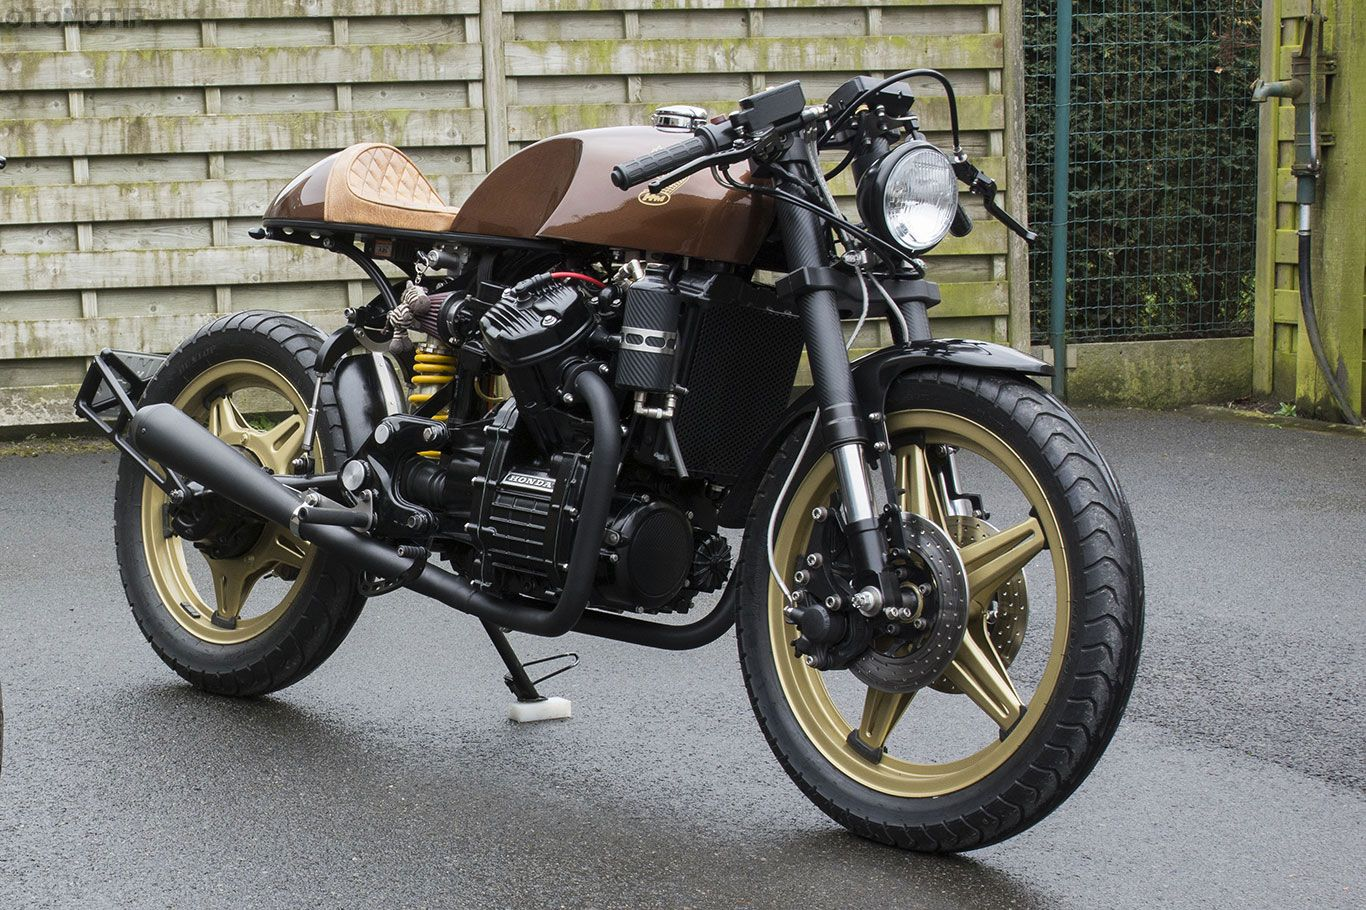 honda cx500 cafe racer - yahoo search results | cafe racers